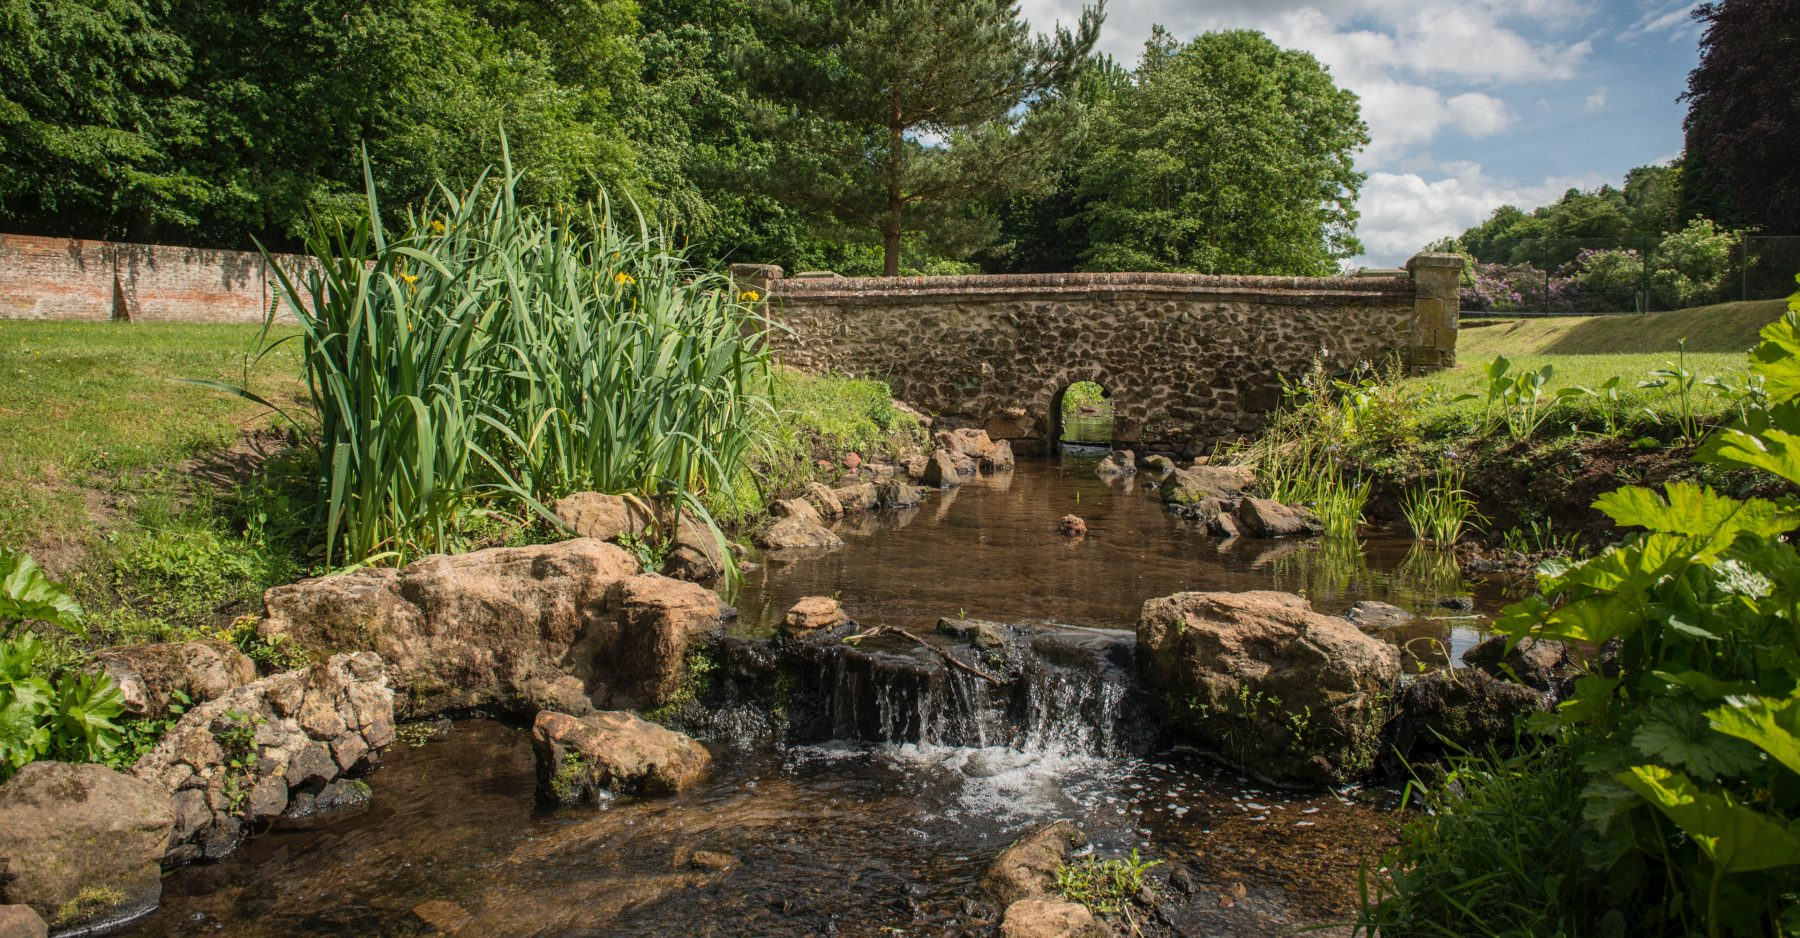 Tillingbourne River with aquatic plants and wildlife